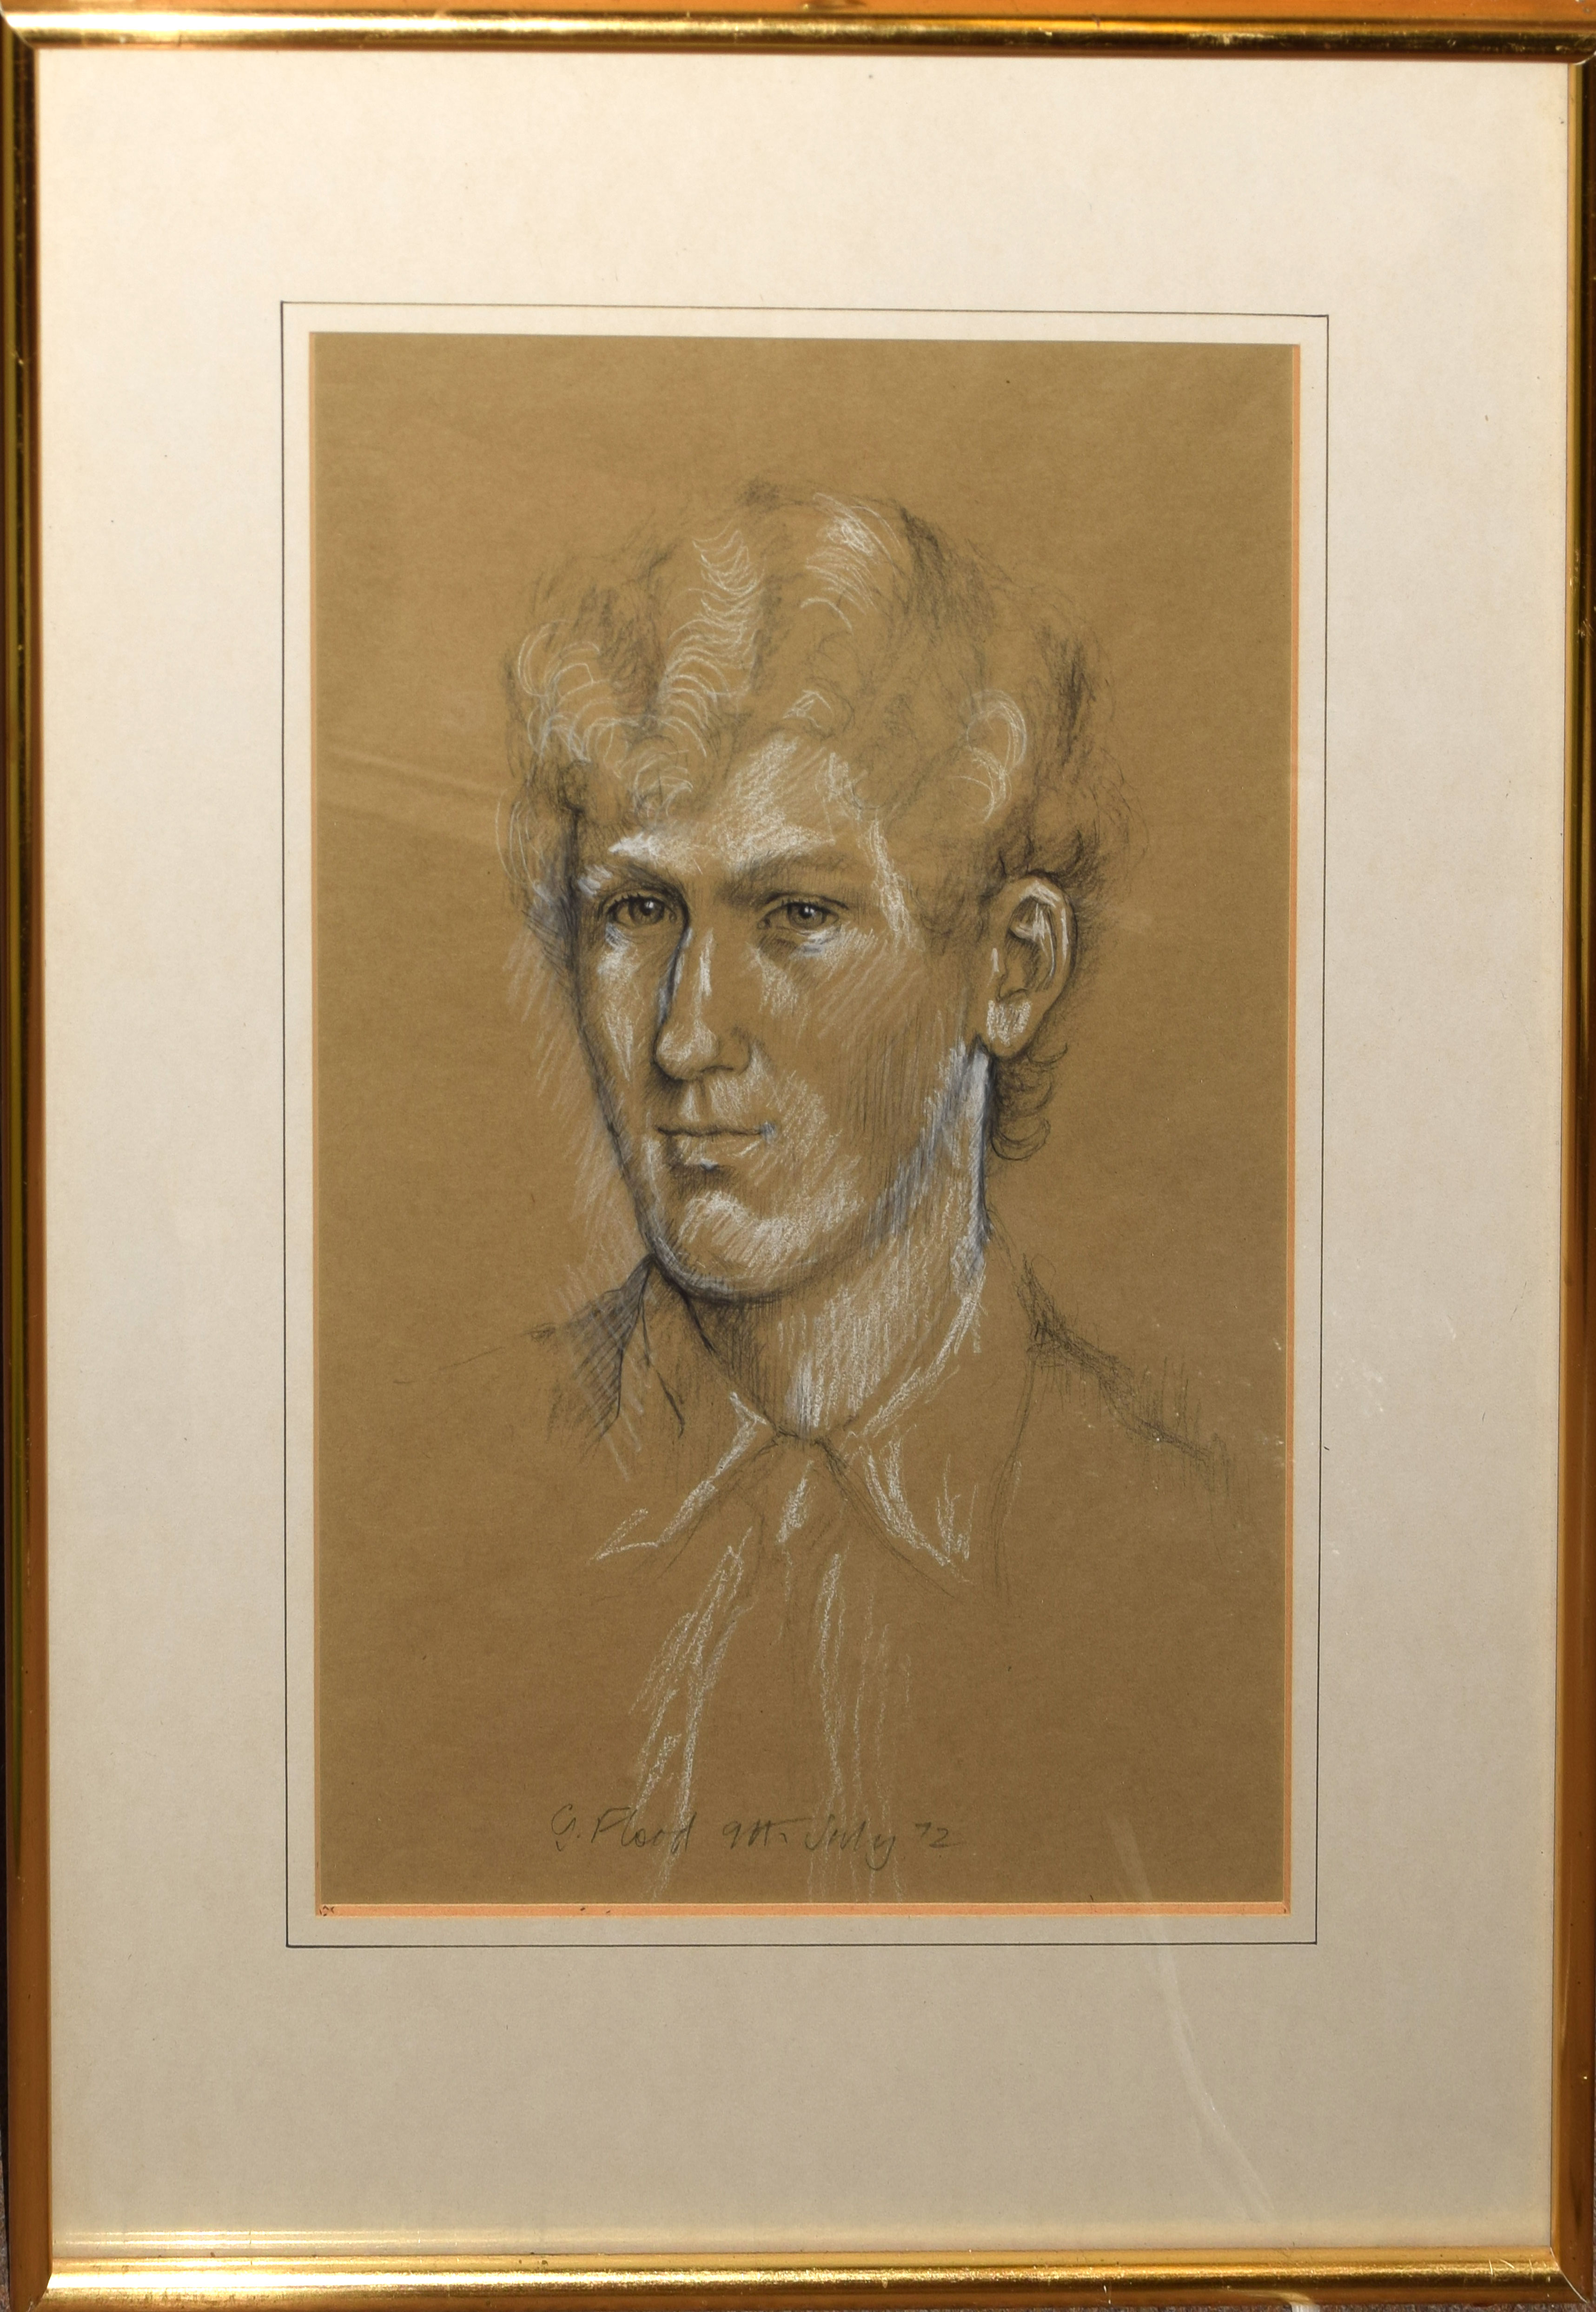 G Flood, Portrait of a man, pastel, signed and dated 9th July 1972, 38 x 25cm